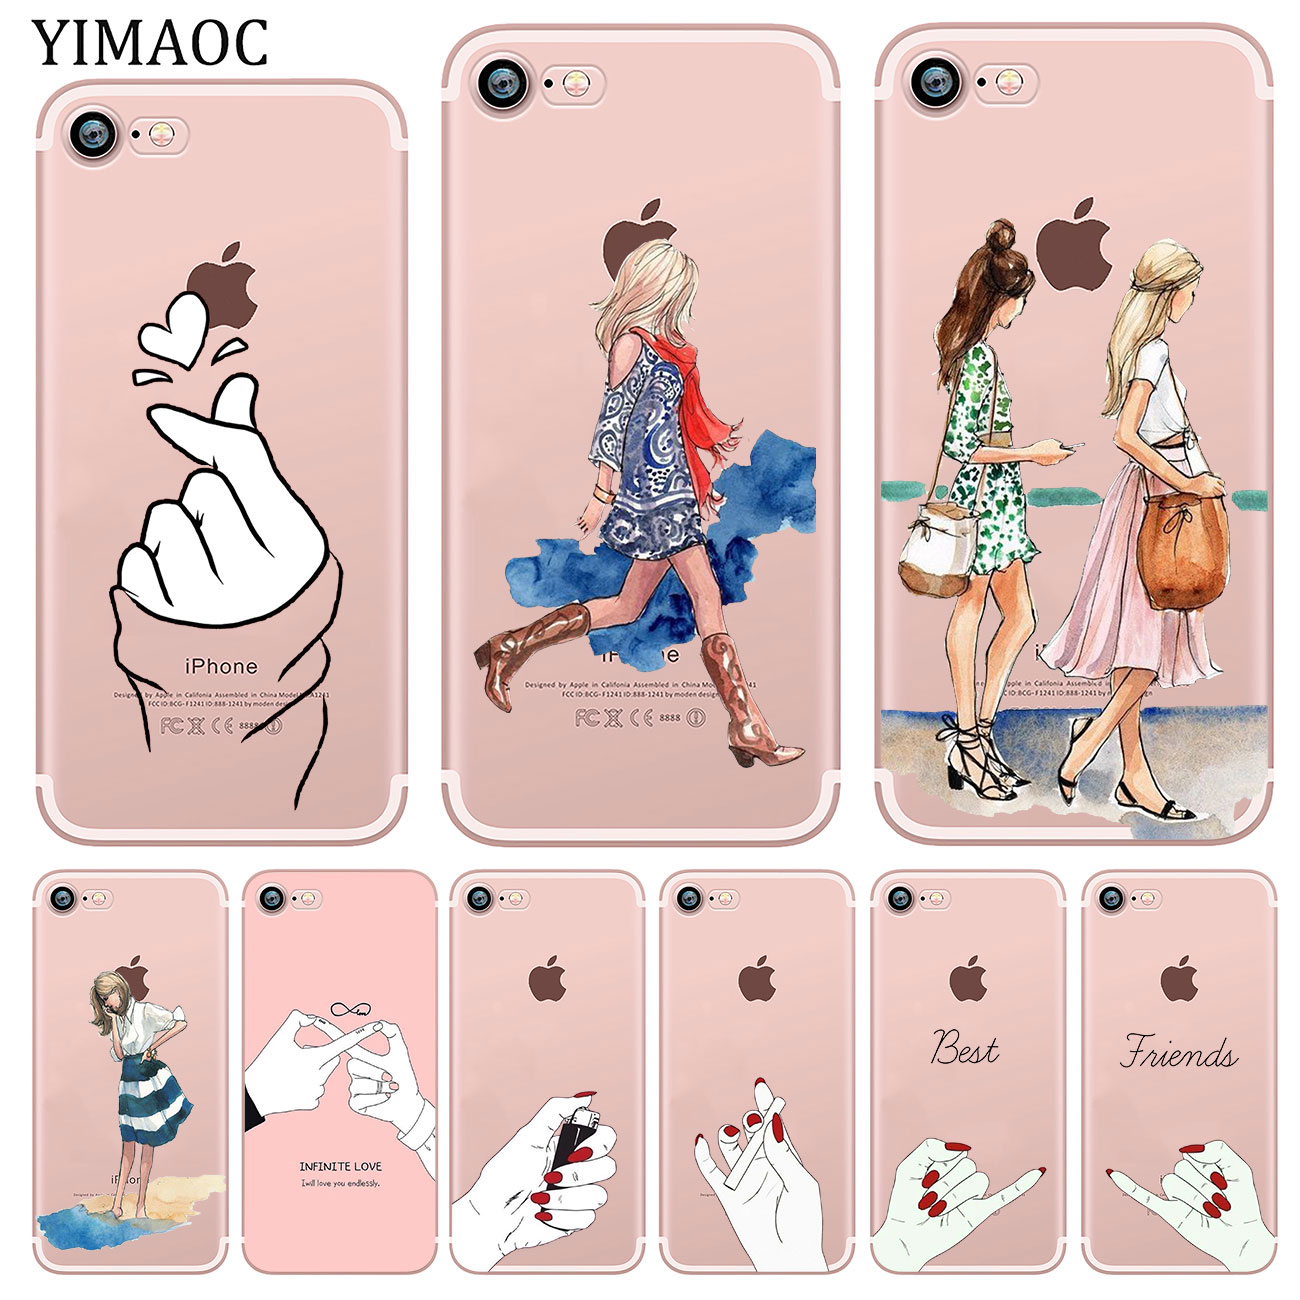 YIMAOC Best Friend Girlfriend Boyfriend Shopping girl Soft Silicone Case for iPhone X XS Max XR 5 5S SE 6 6S 7 8 Plus 10 Cover